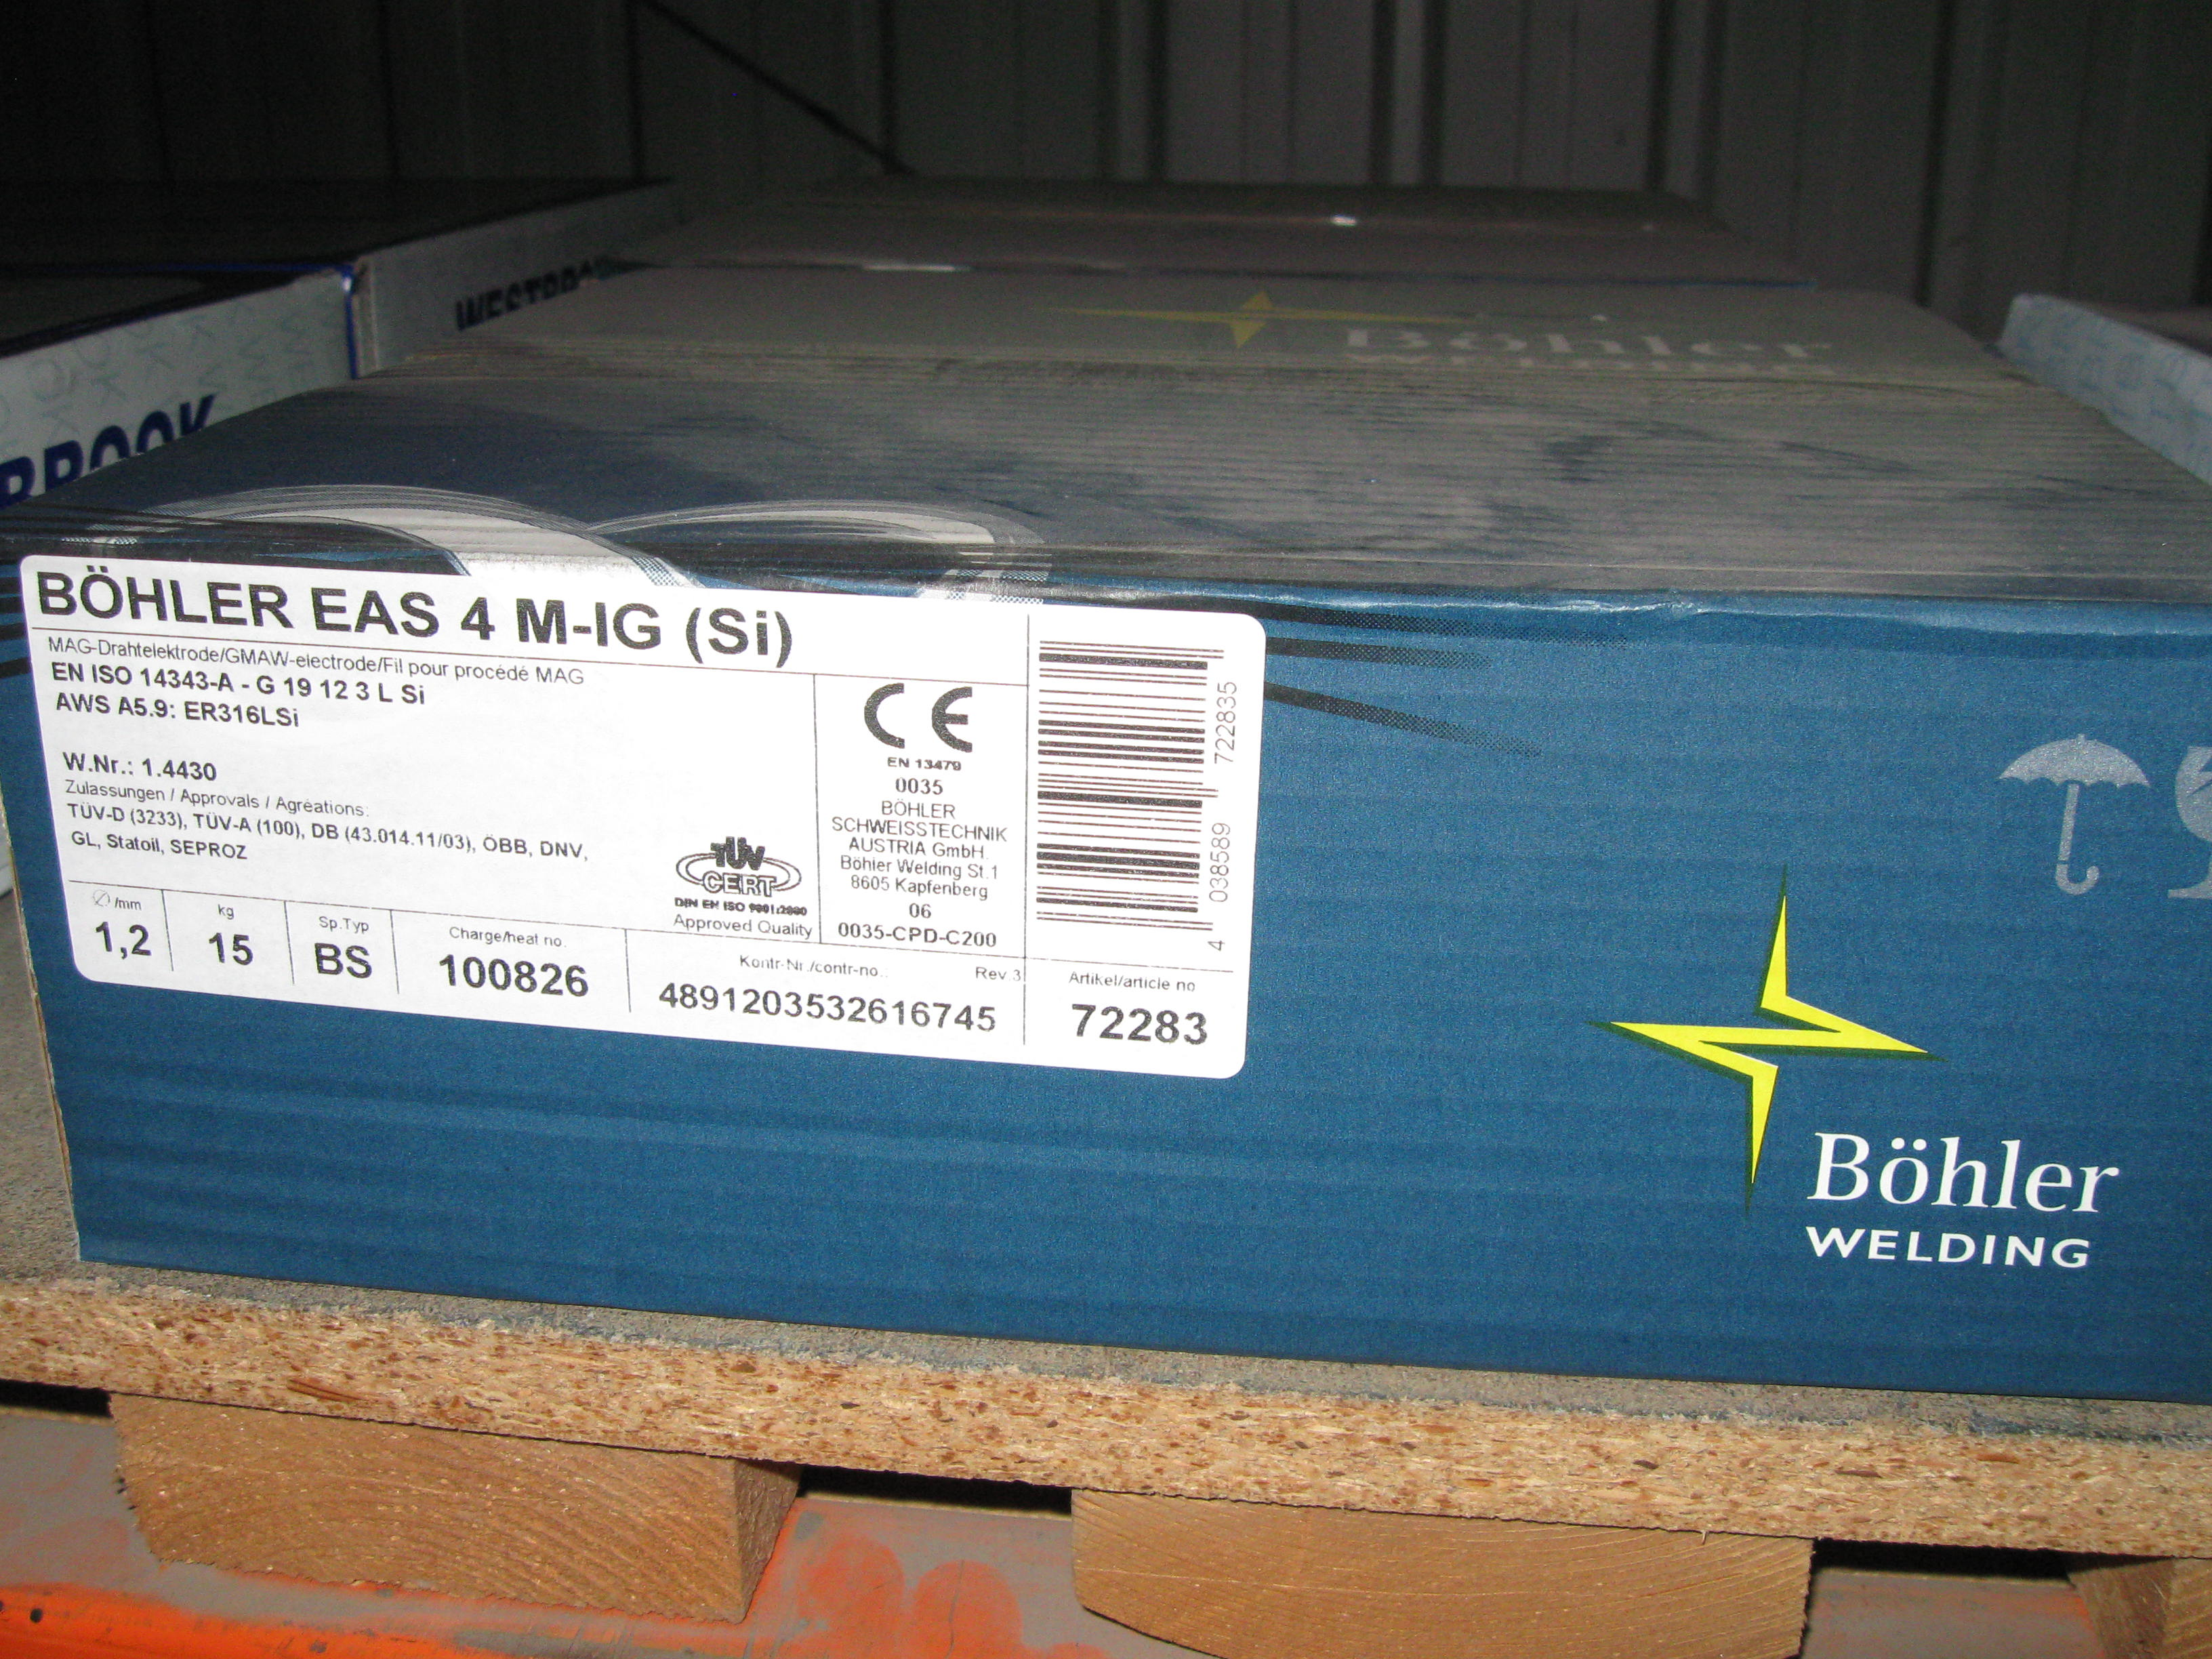 Mig Wire: Wire, Mig Welding 316LSi Bohler EAS 4 M-IG (Si) Mig on ...